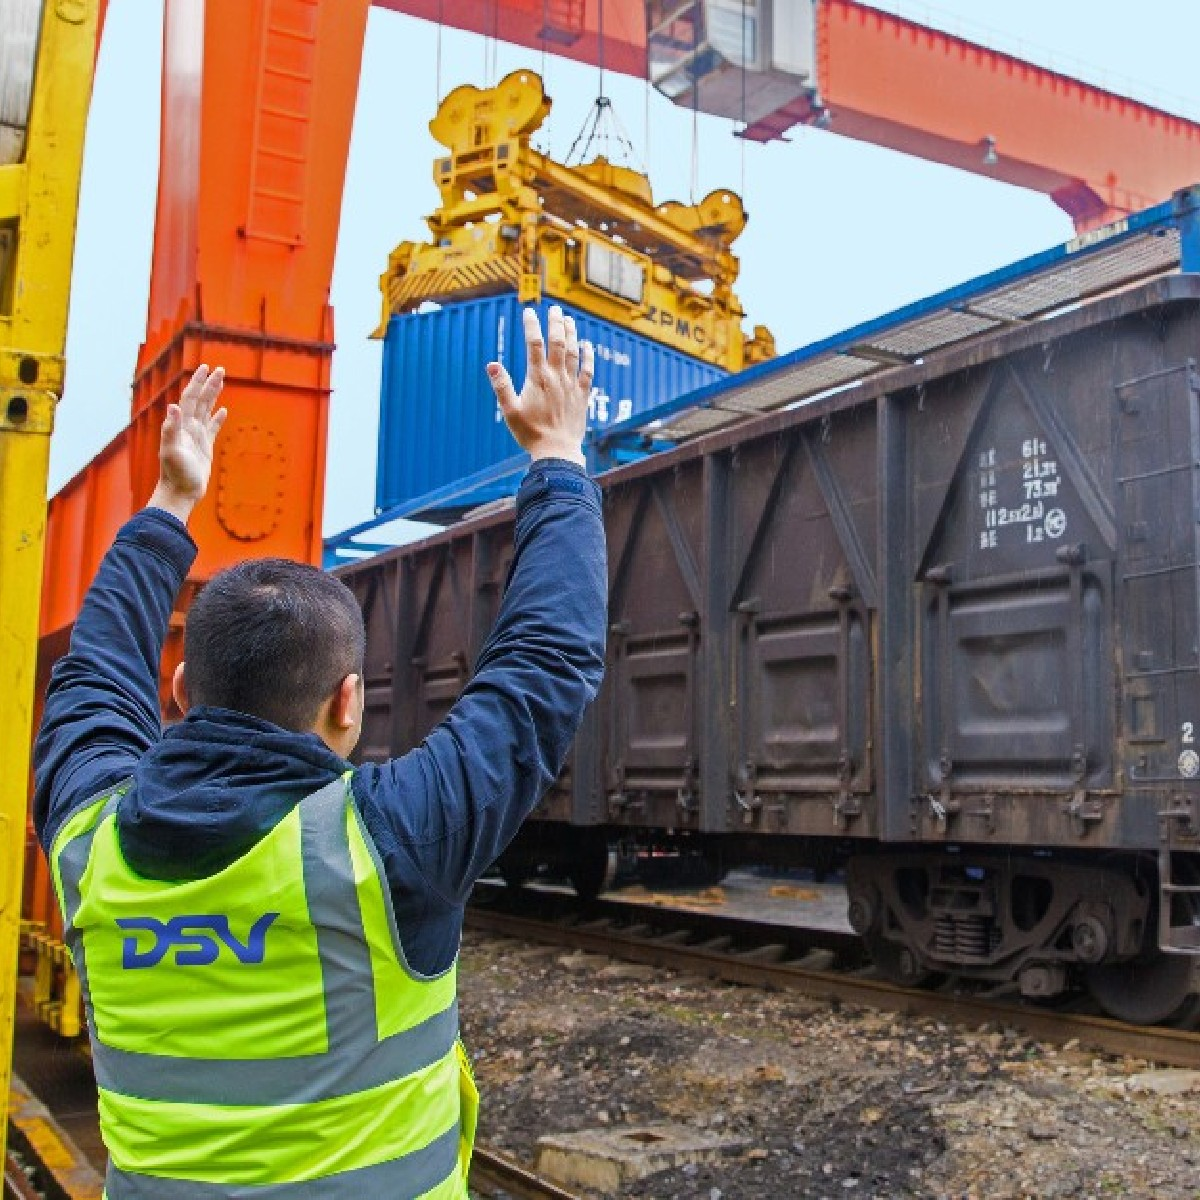 Rail freight offers you a reliable and more environmentally friendly transport alternative for your air- and seafreight shipments. Discover our options for you on https://t.co/NJ76LPO1Vi   #dsv #moveforward #transport #logistics #markets #economy #rail #customerrelations #china https://t.co/YGiot9lj1p